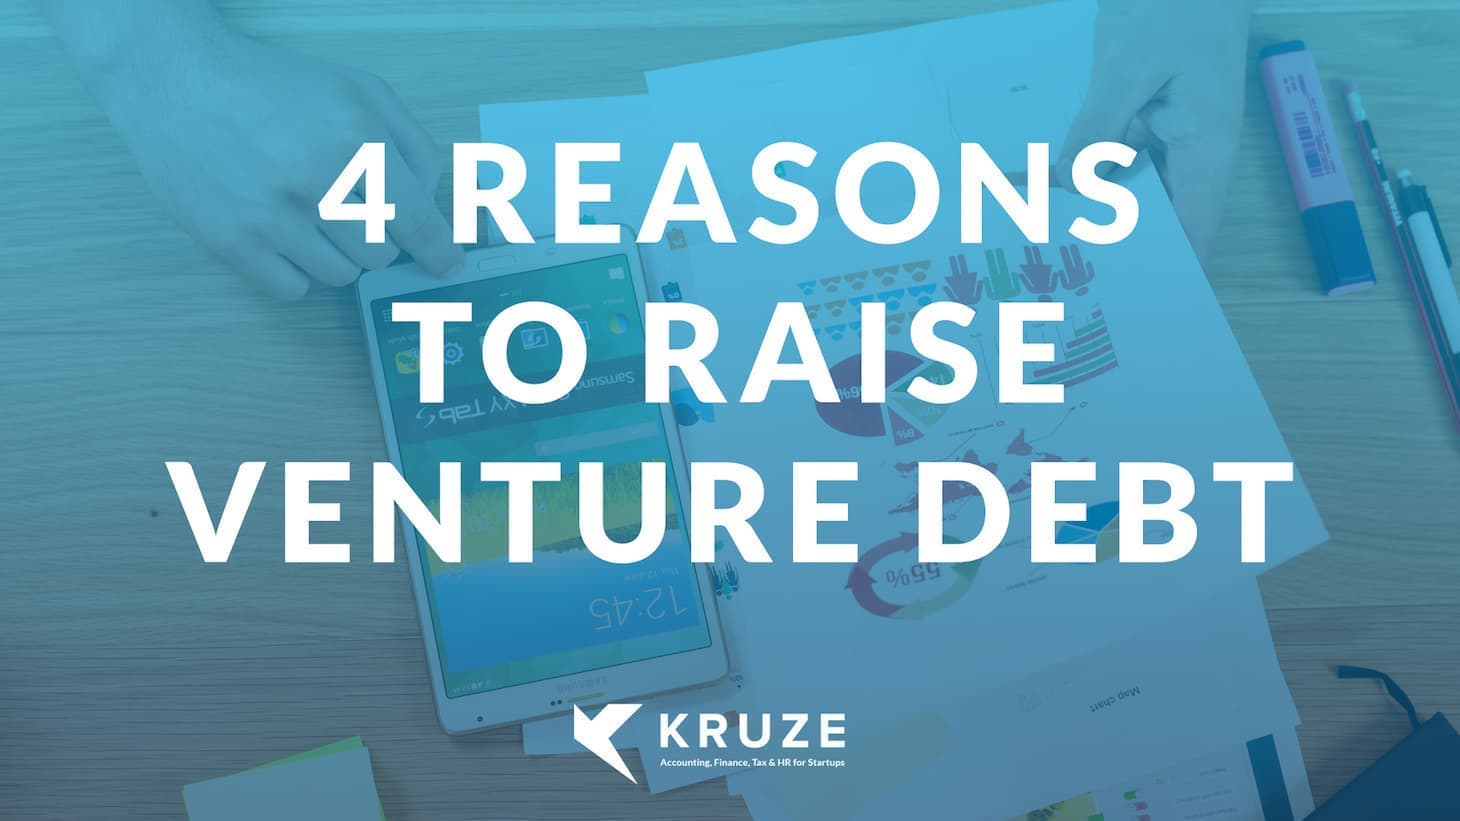 4 Reasons to Raise Venture Debt